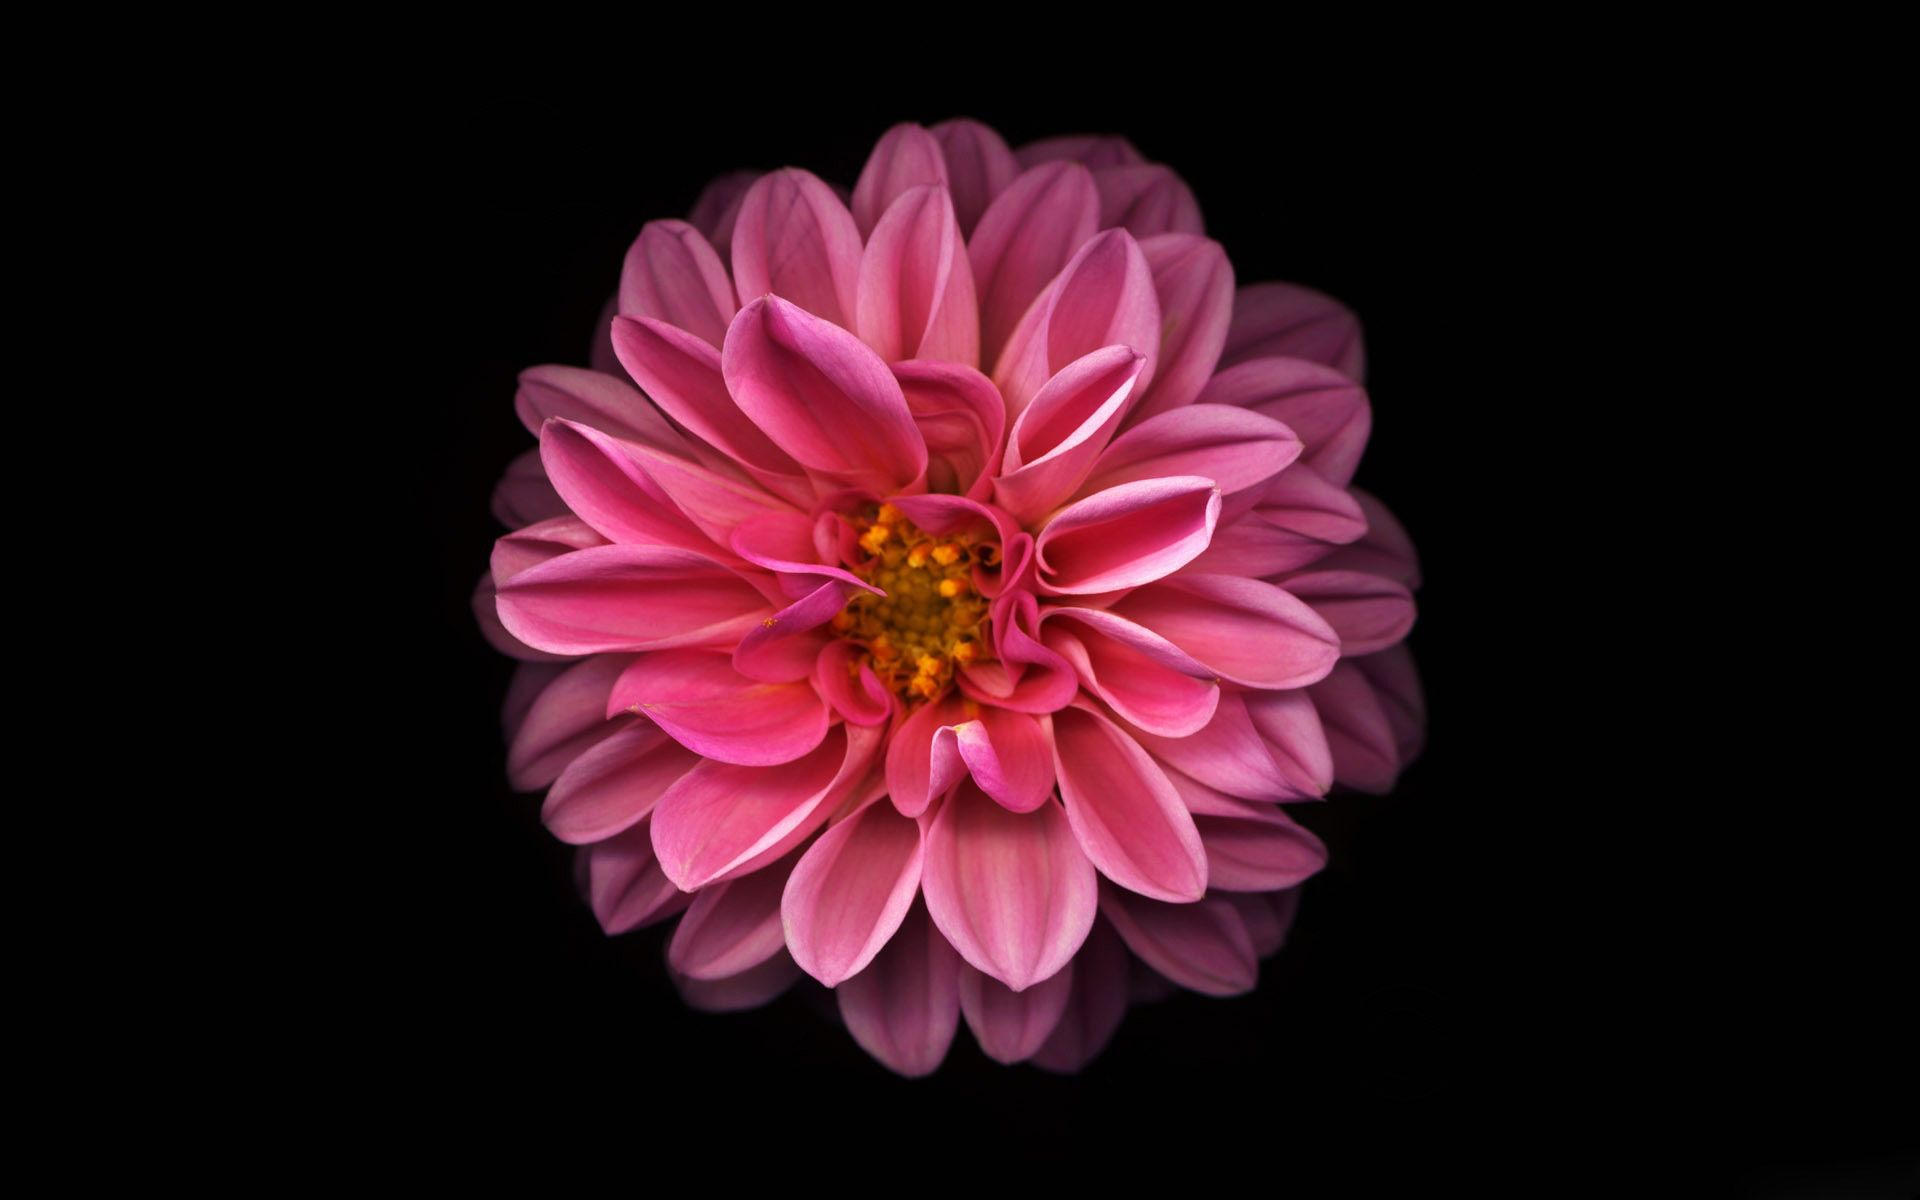 Pink Dahlia Flowers Windows 7 Background Jpg Wallpaper Free Flower Wallpaper Dahlia Flower Pretty Flowers